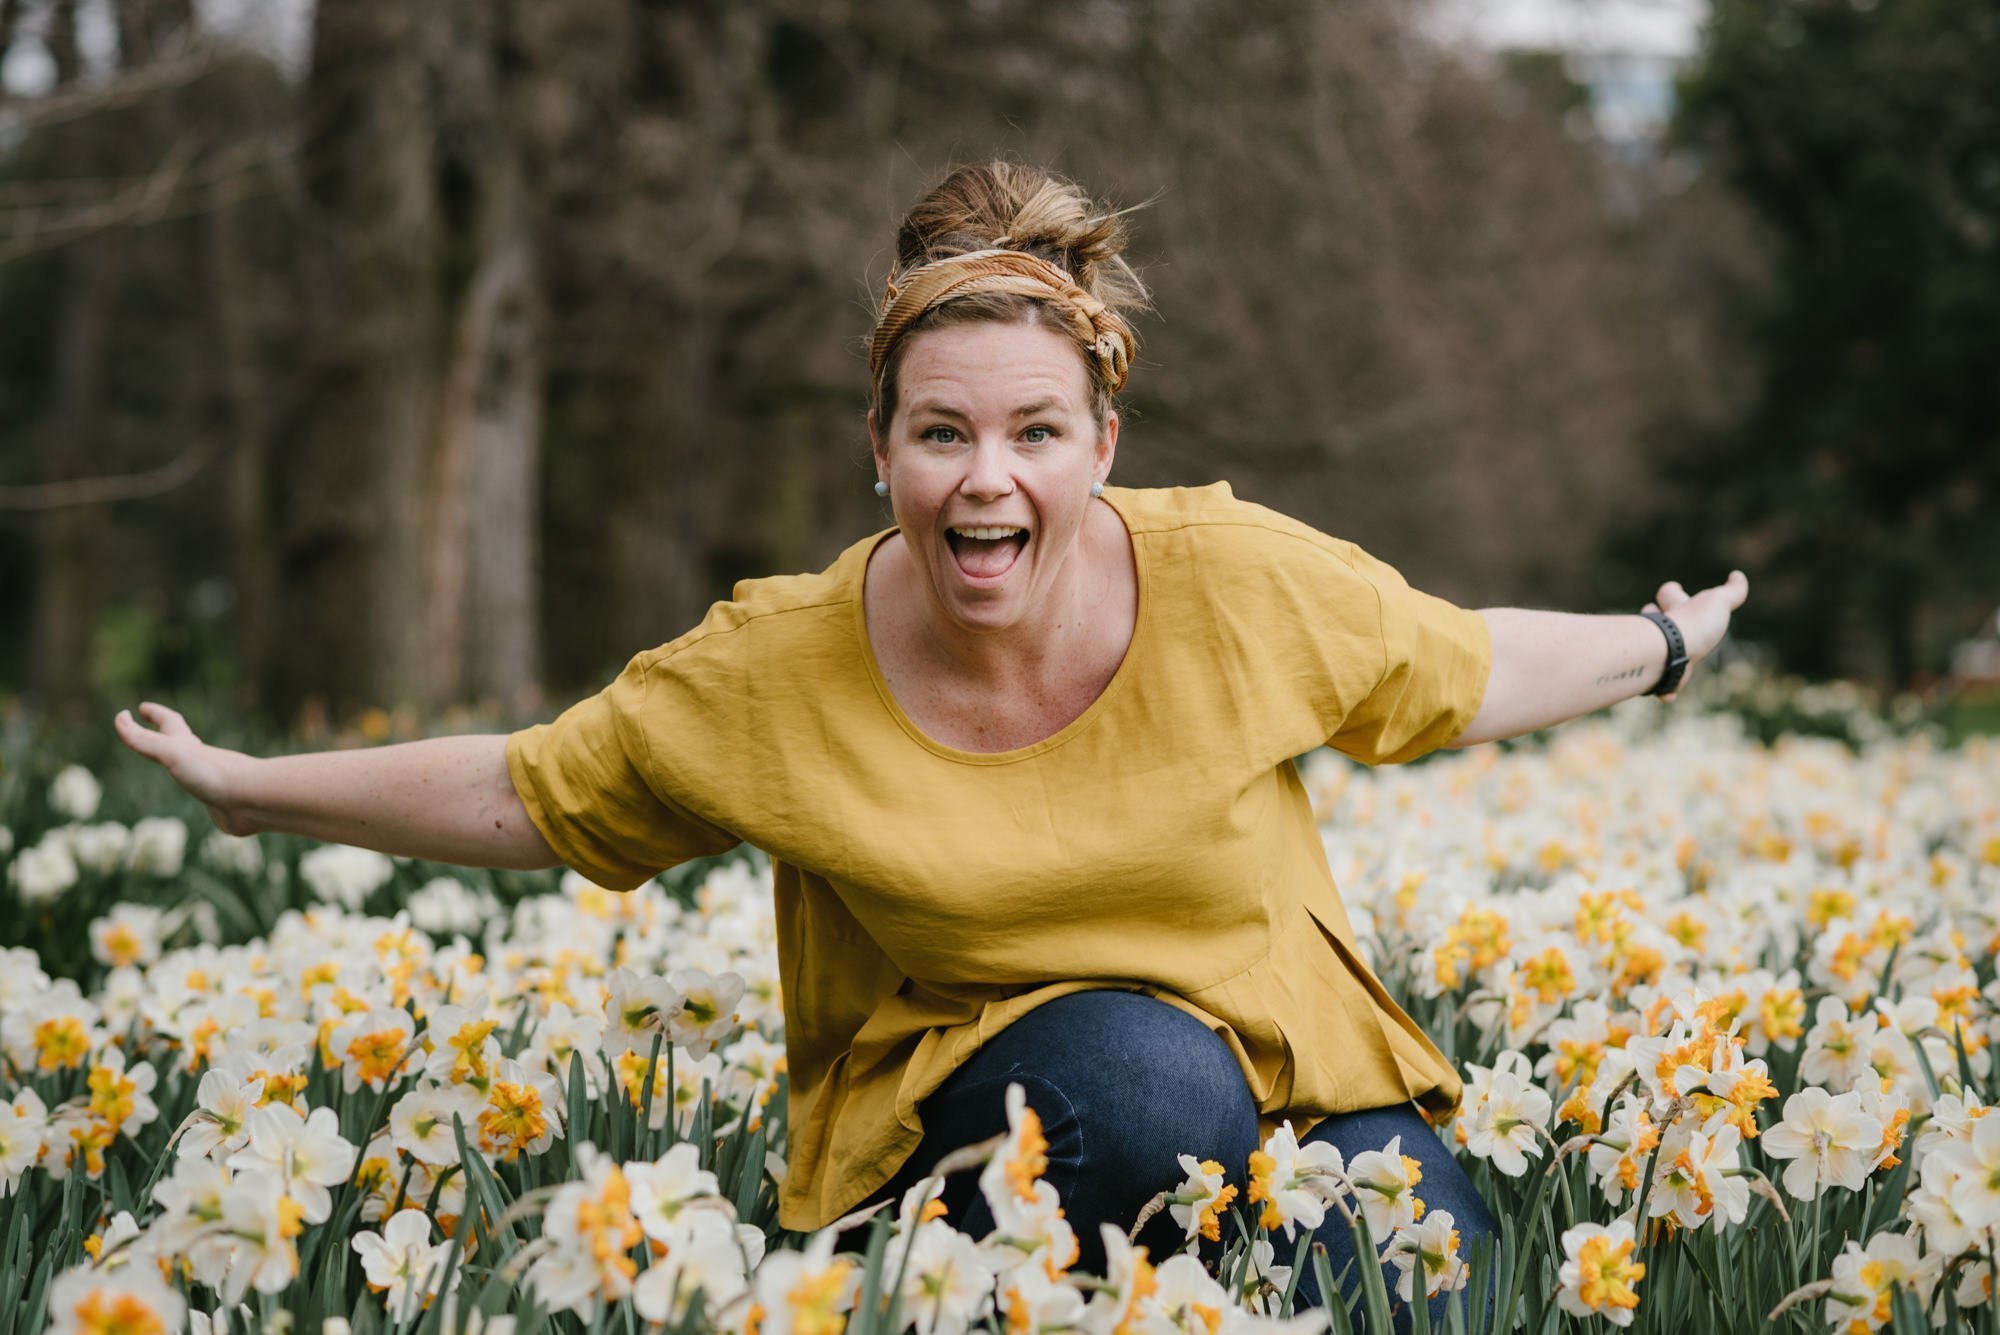 Marion Piper wearing a gold top and blue jeans with her arms outstretched crouching in a field of flowers.